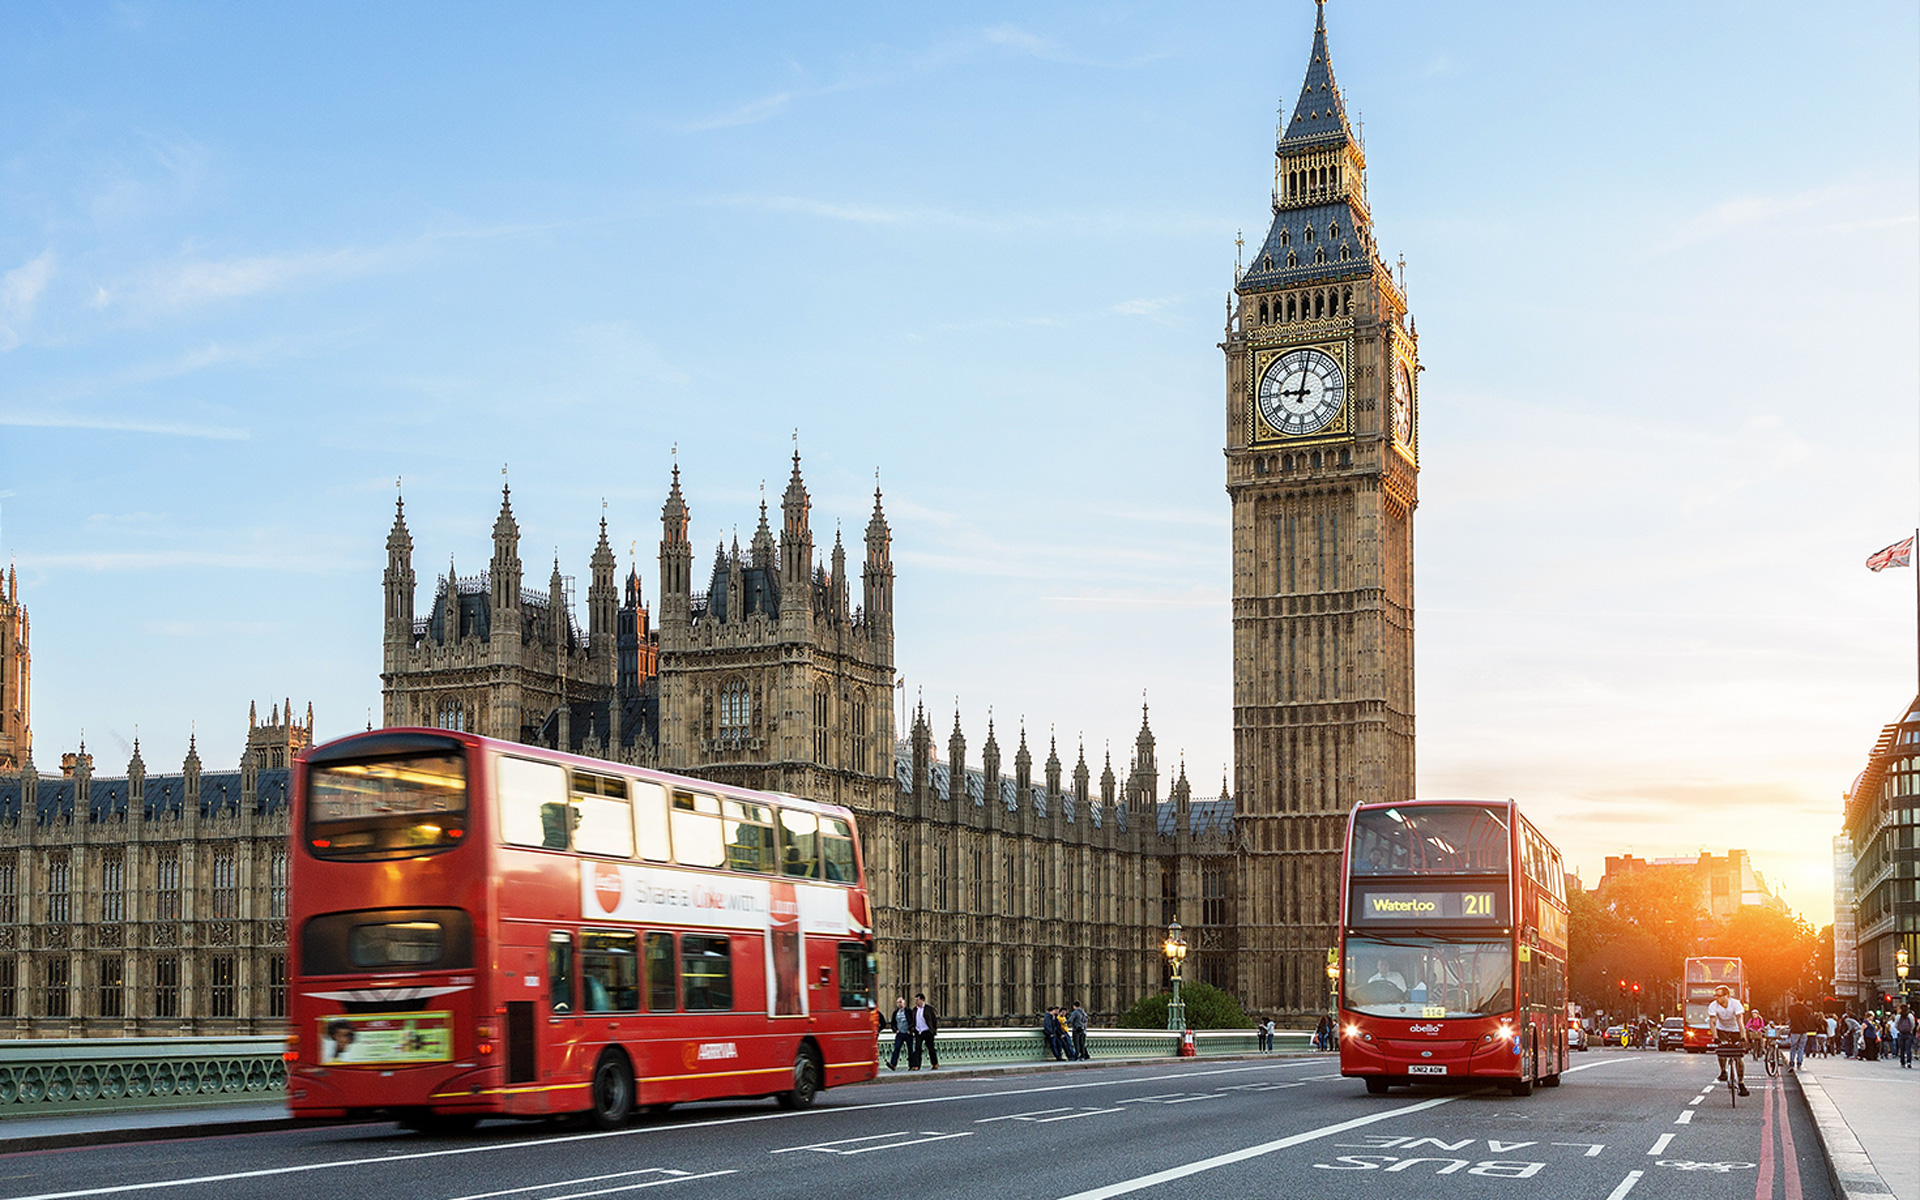 A double-decker bus driving by Big Ben in London, England